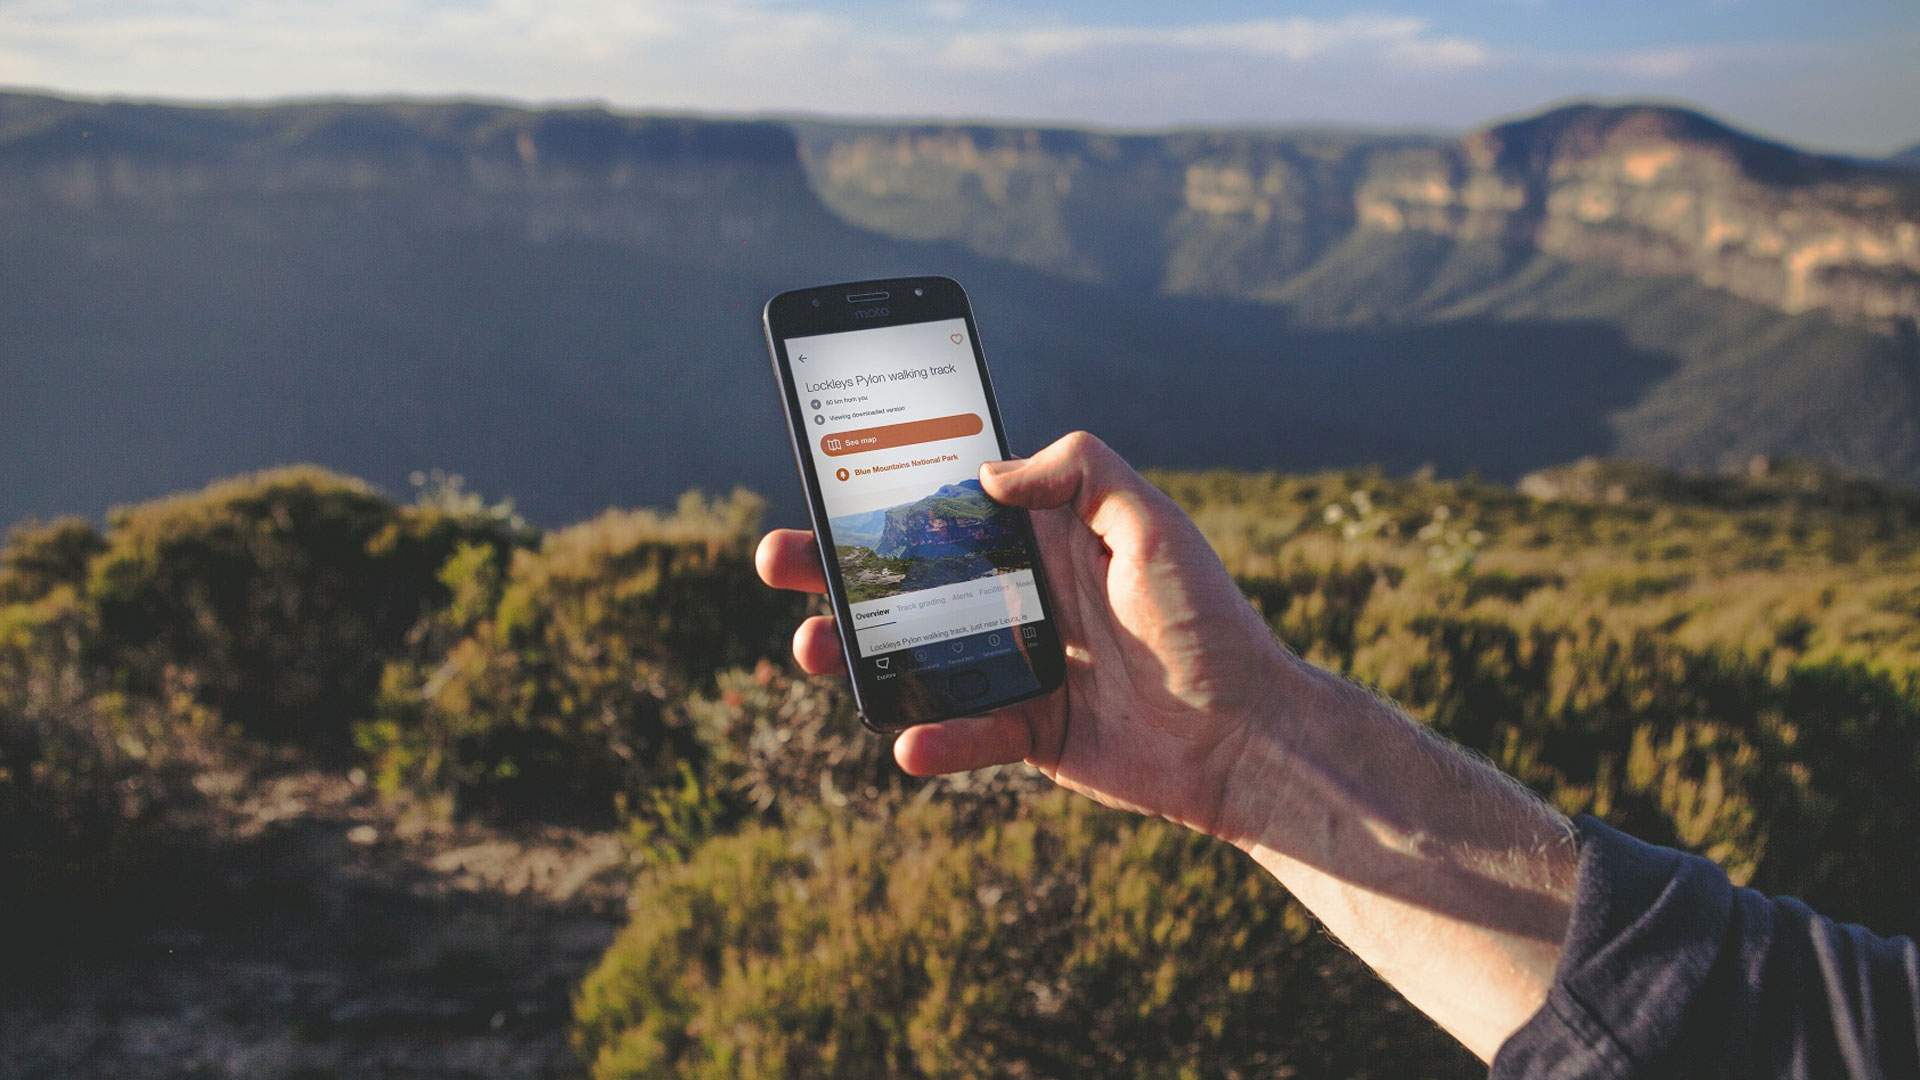 This New Free App Will Help You Find the Best Hikes and Camp Sites in NSW's National Parks